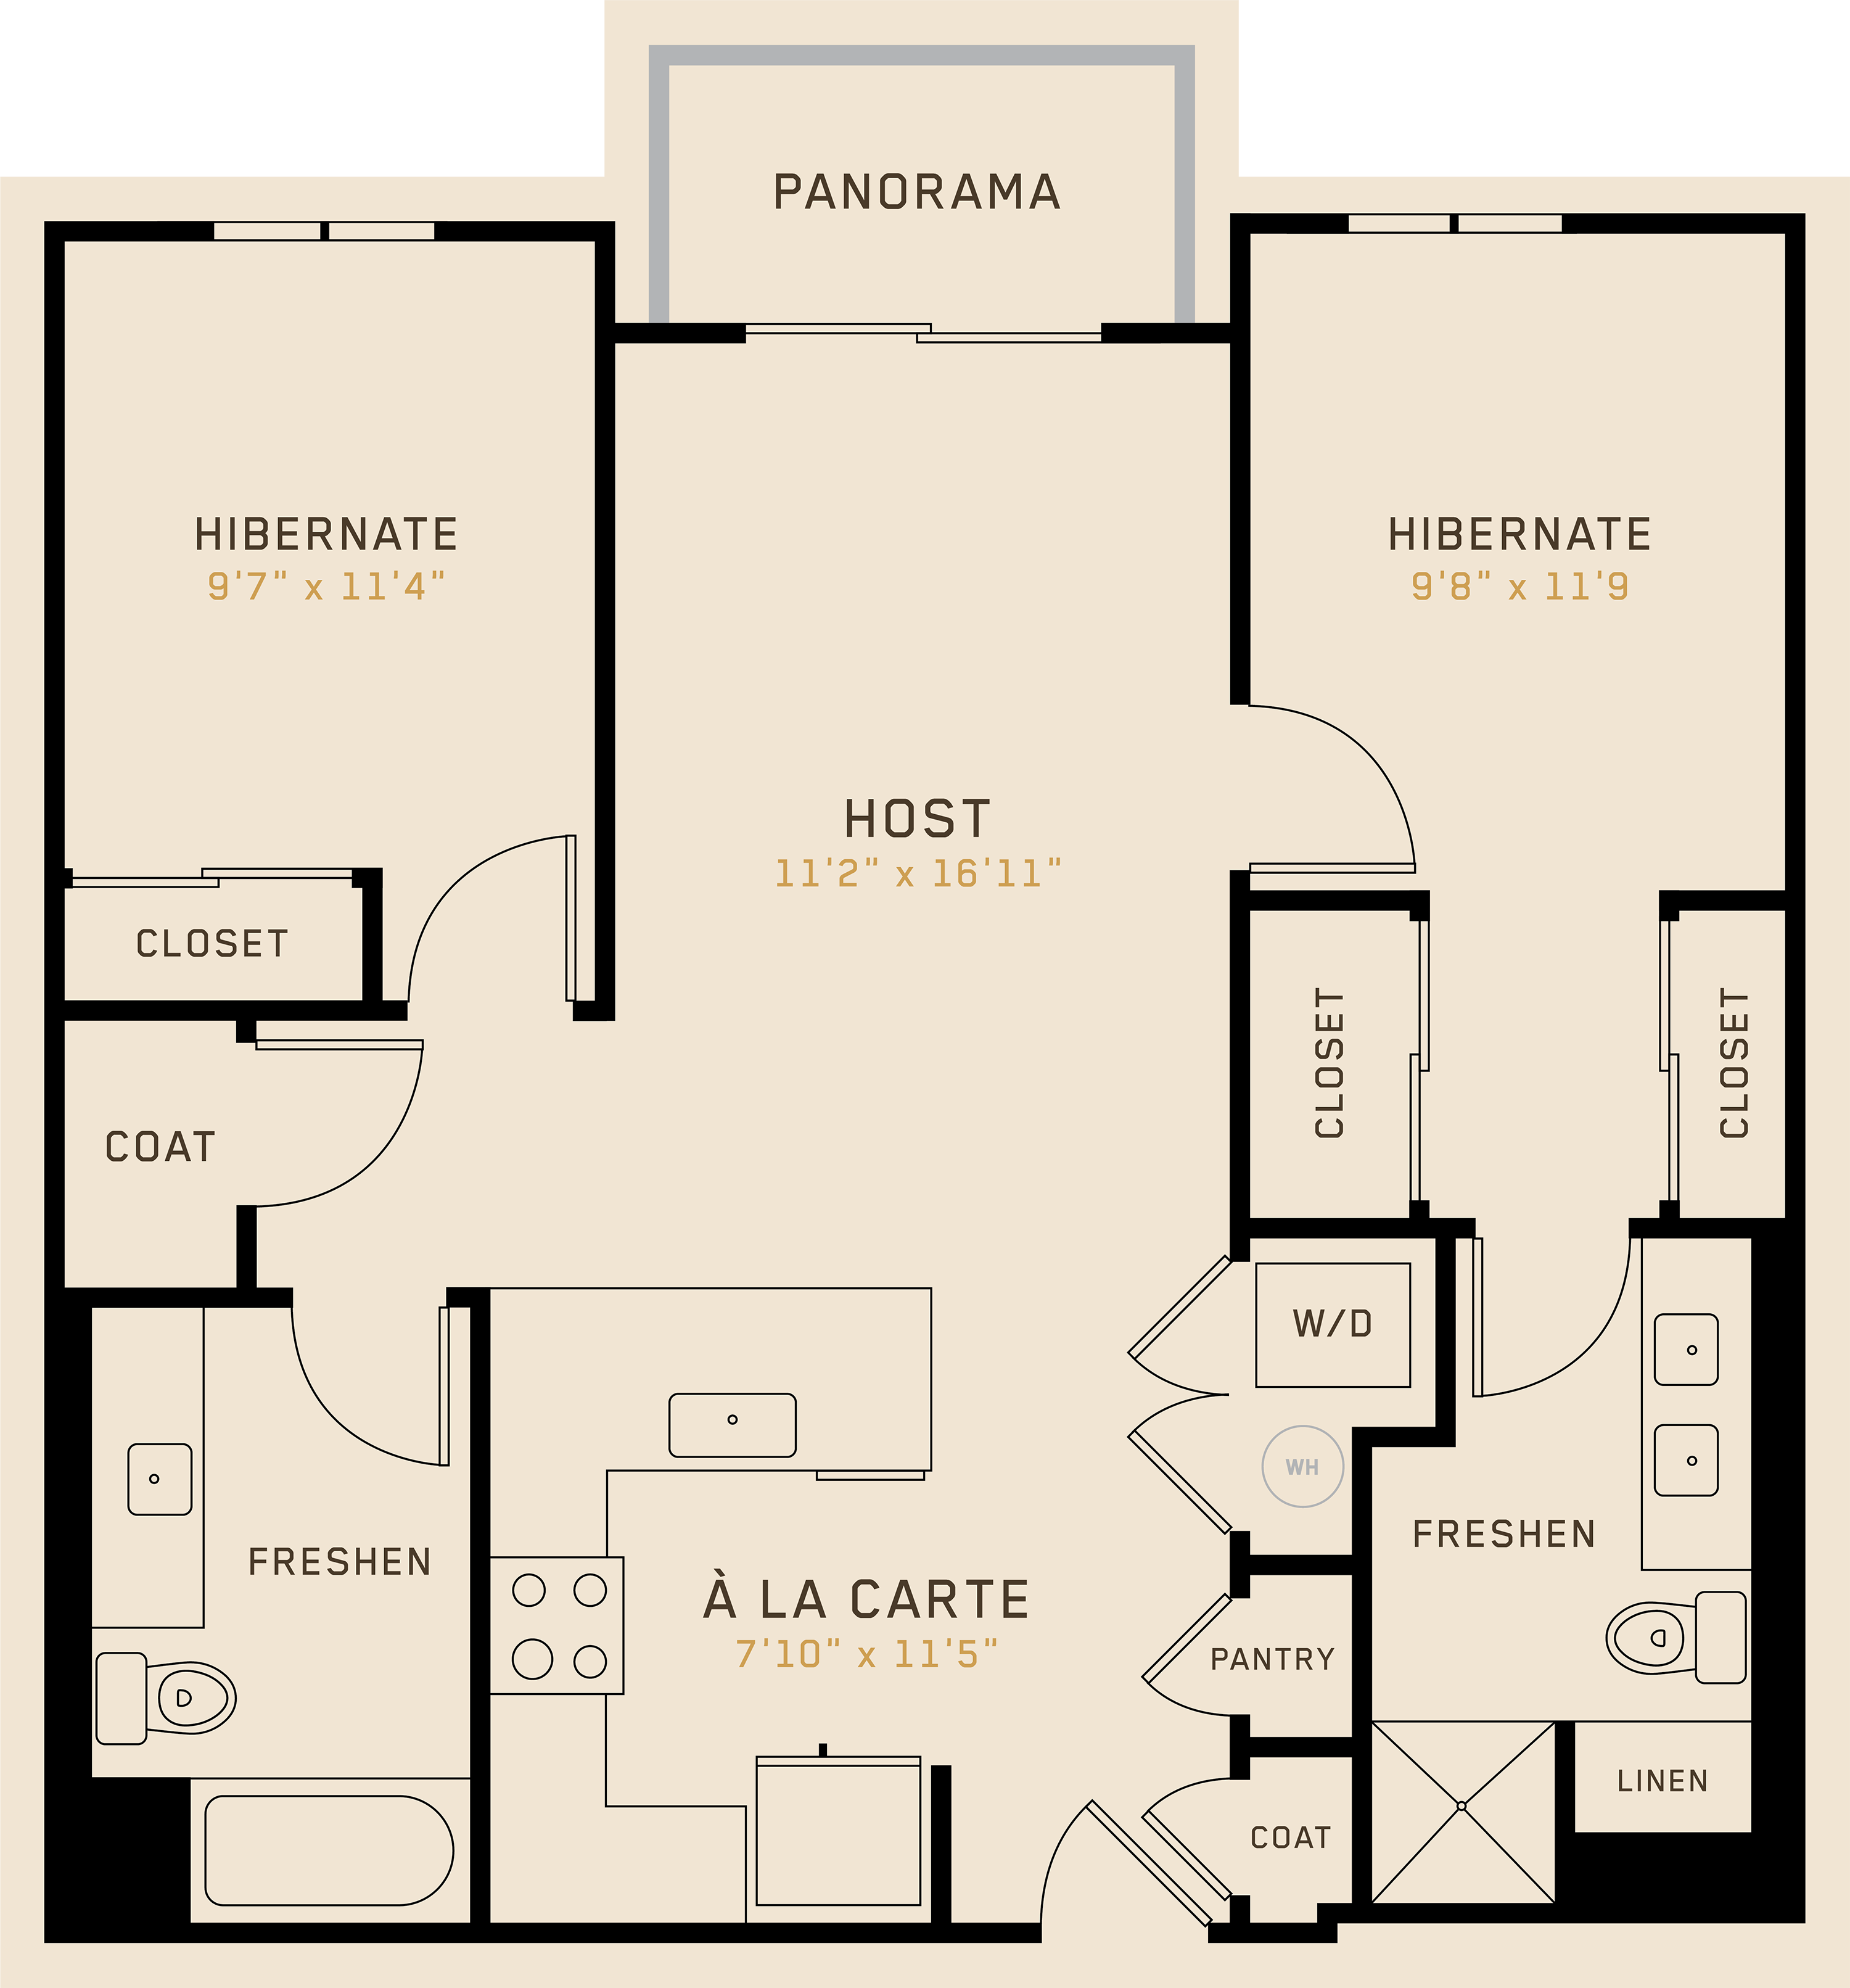 B2D floor plan featuring 2 bedrooms, 2 bathrooms, and is 976 square feet